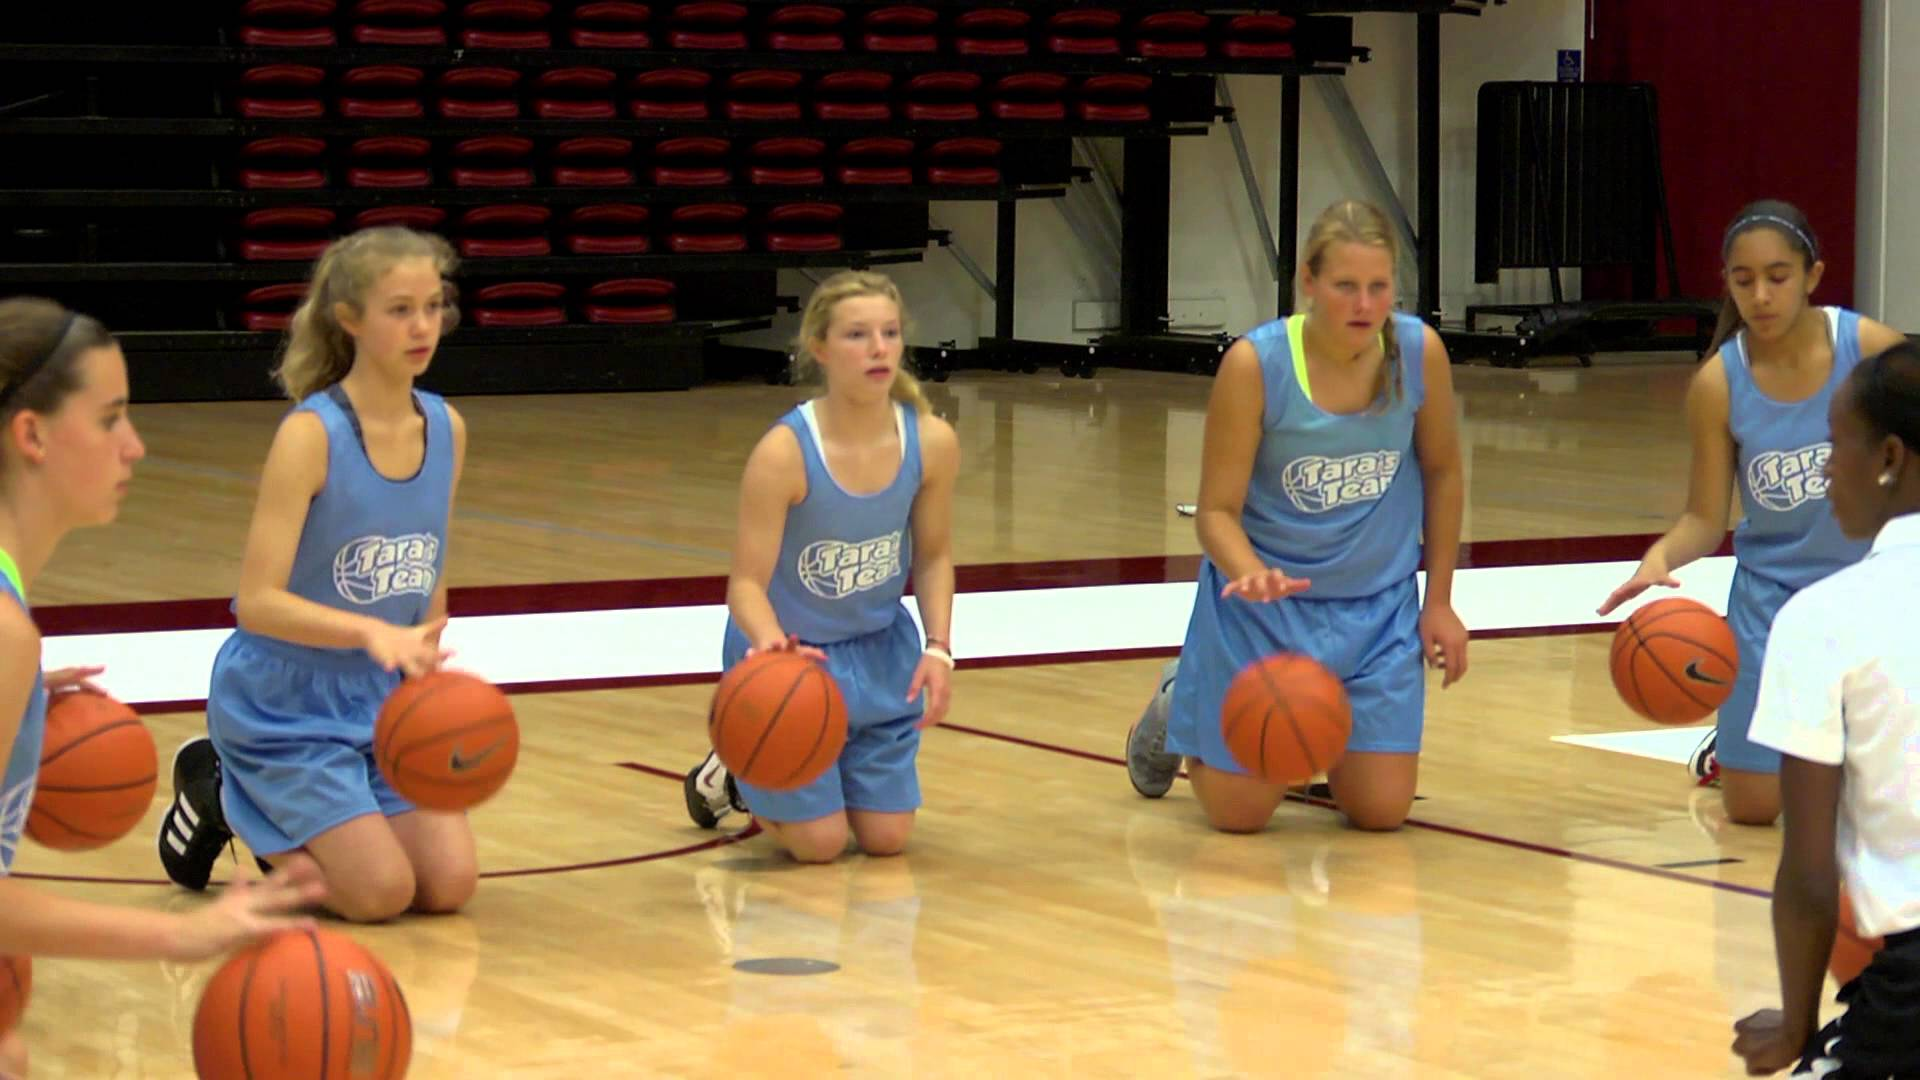 How to IMPROVE Ball Handling: MASTER These 4 Drills - YouTube  |Better Ball Handling Drills